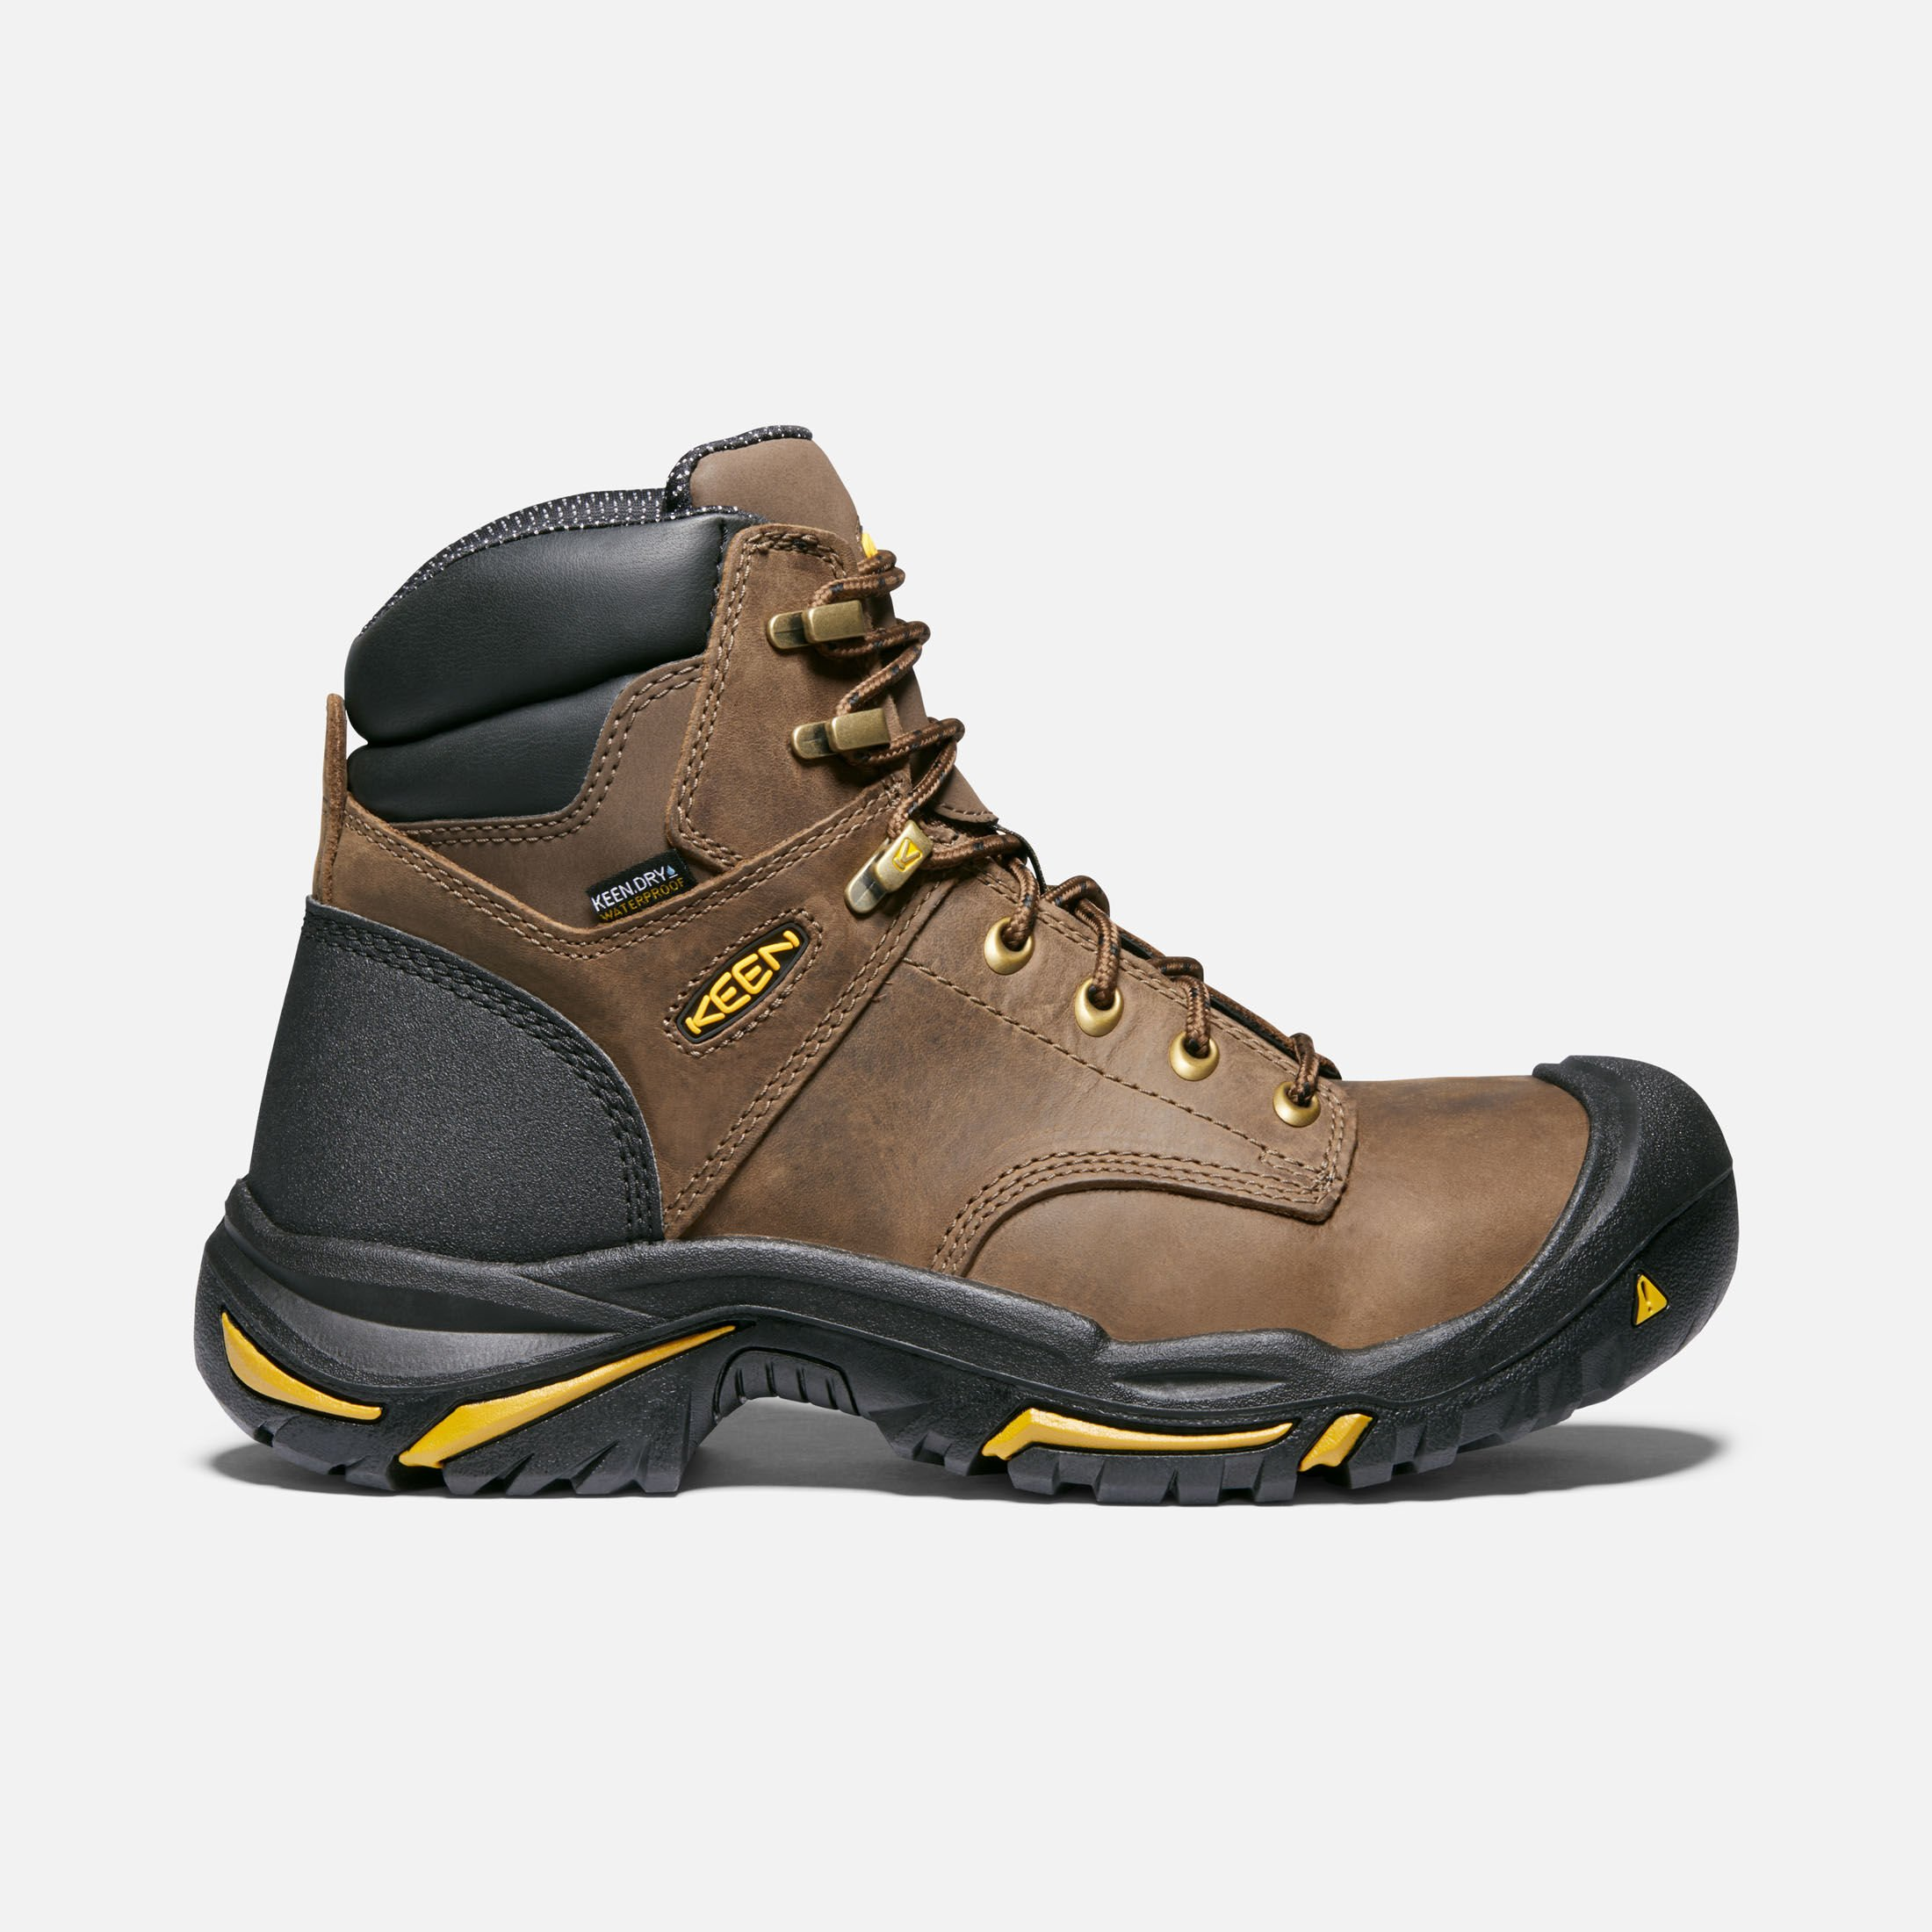 MENS LEATHER LIGHTWEIGHT SAFETY BOOTS ANKLE WORK SHOES METAL TOE CAP SIZE